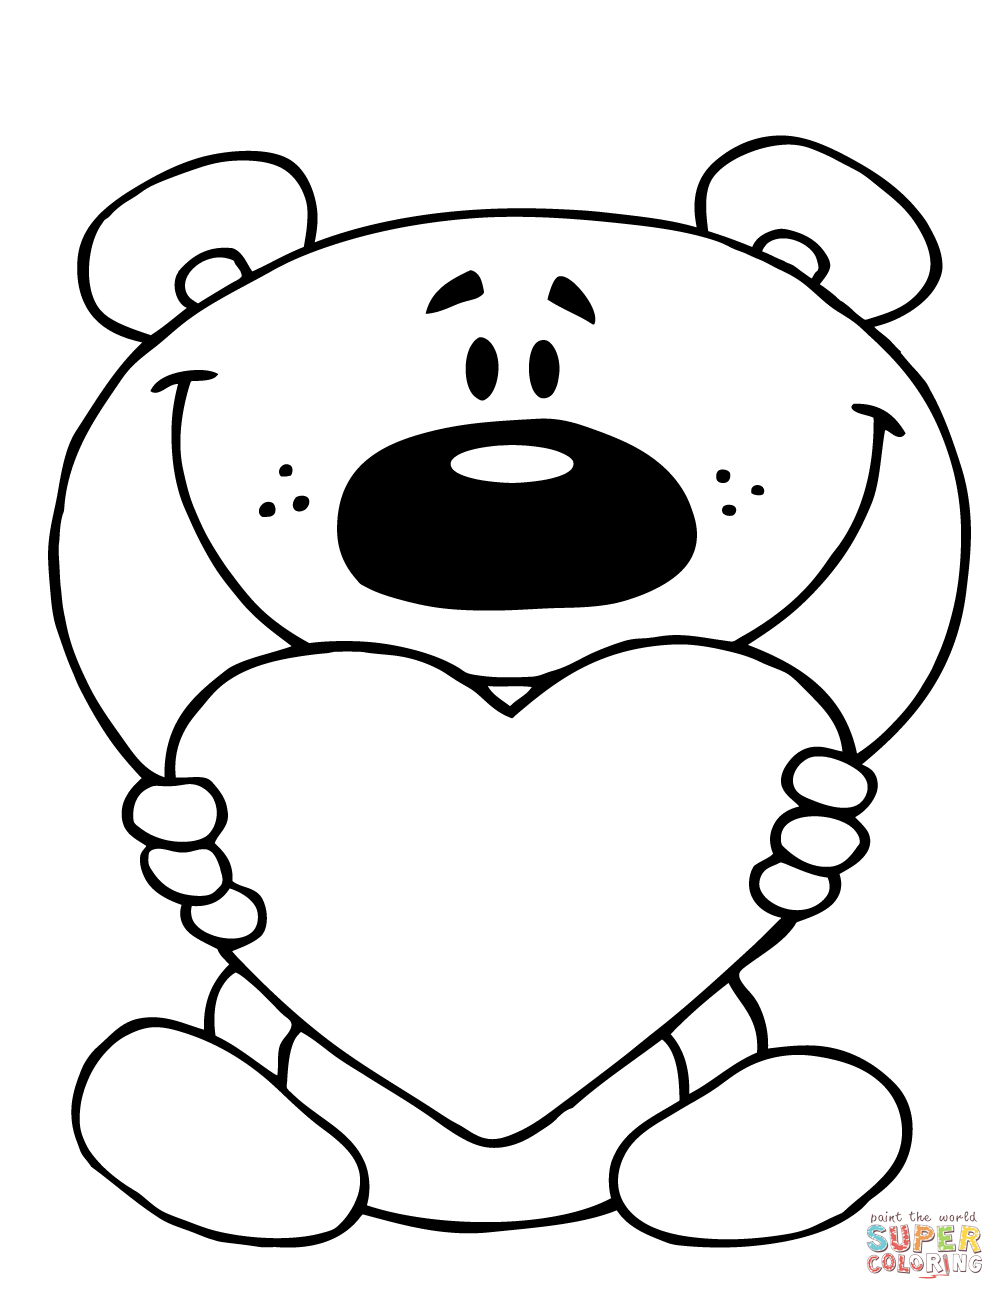 Valentine Teddy Bear Coloring Pages